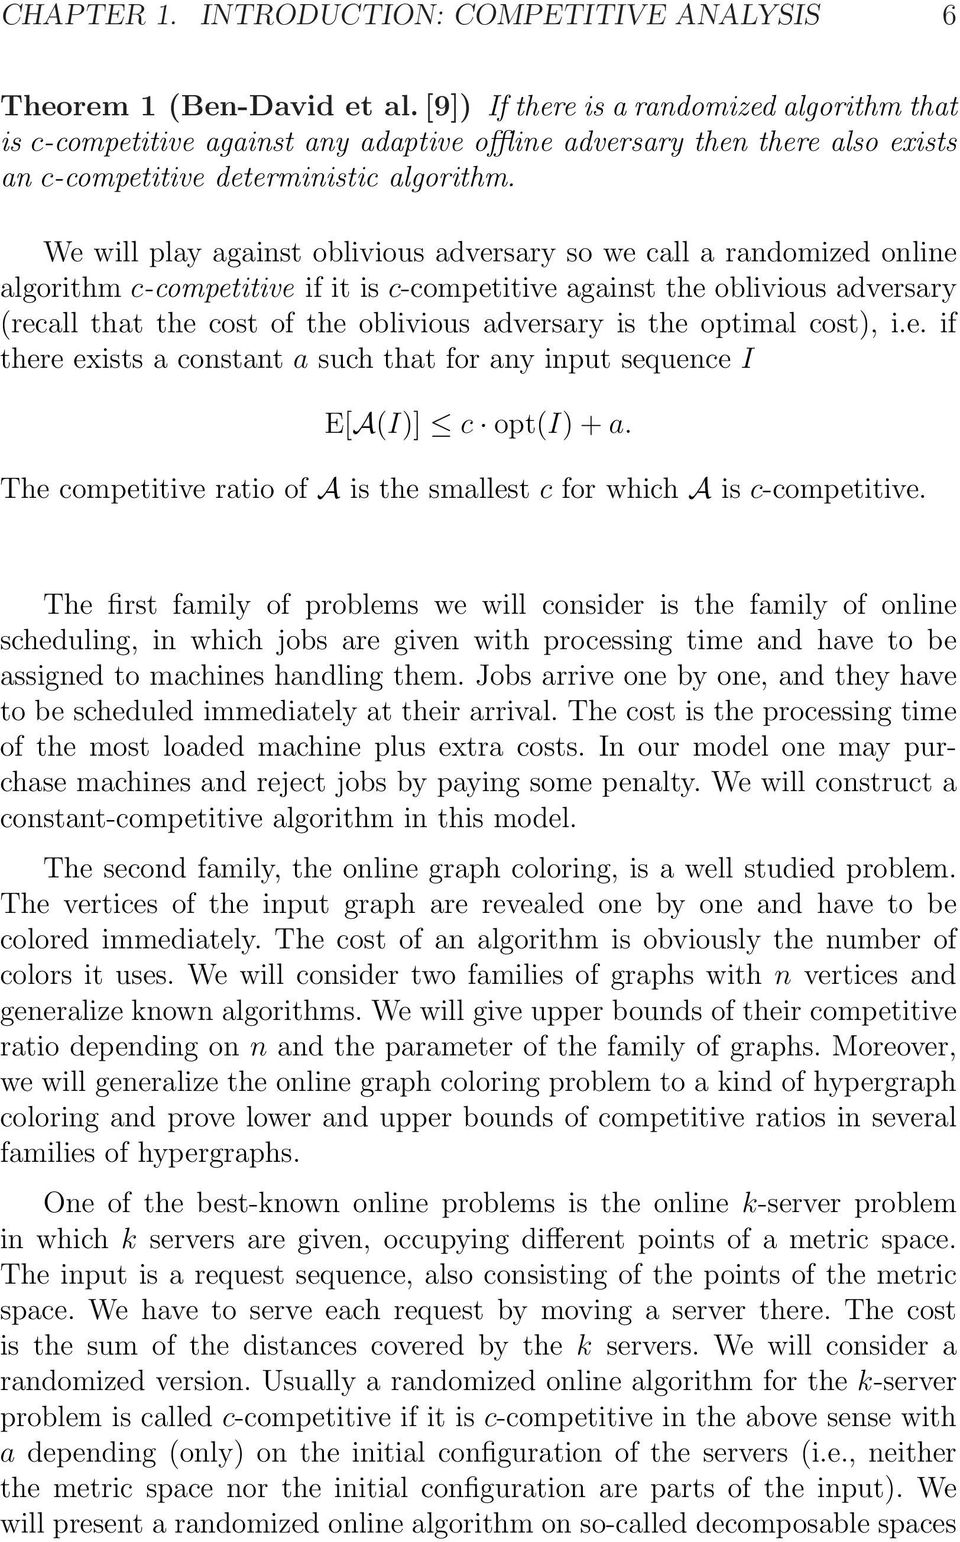 We will play against oblivious adversary so we call a randomized online algorithm c-competitive if it is c-competitive against the oblivious adversary (recall that the cost of the oblivious adversary